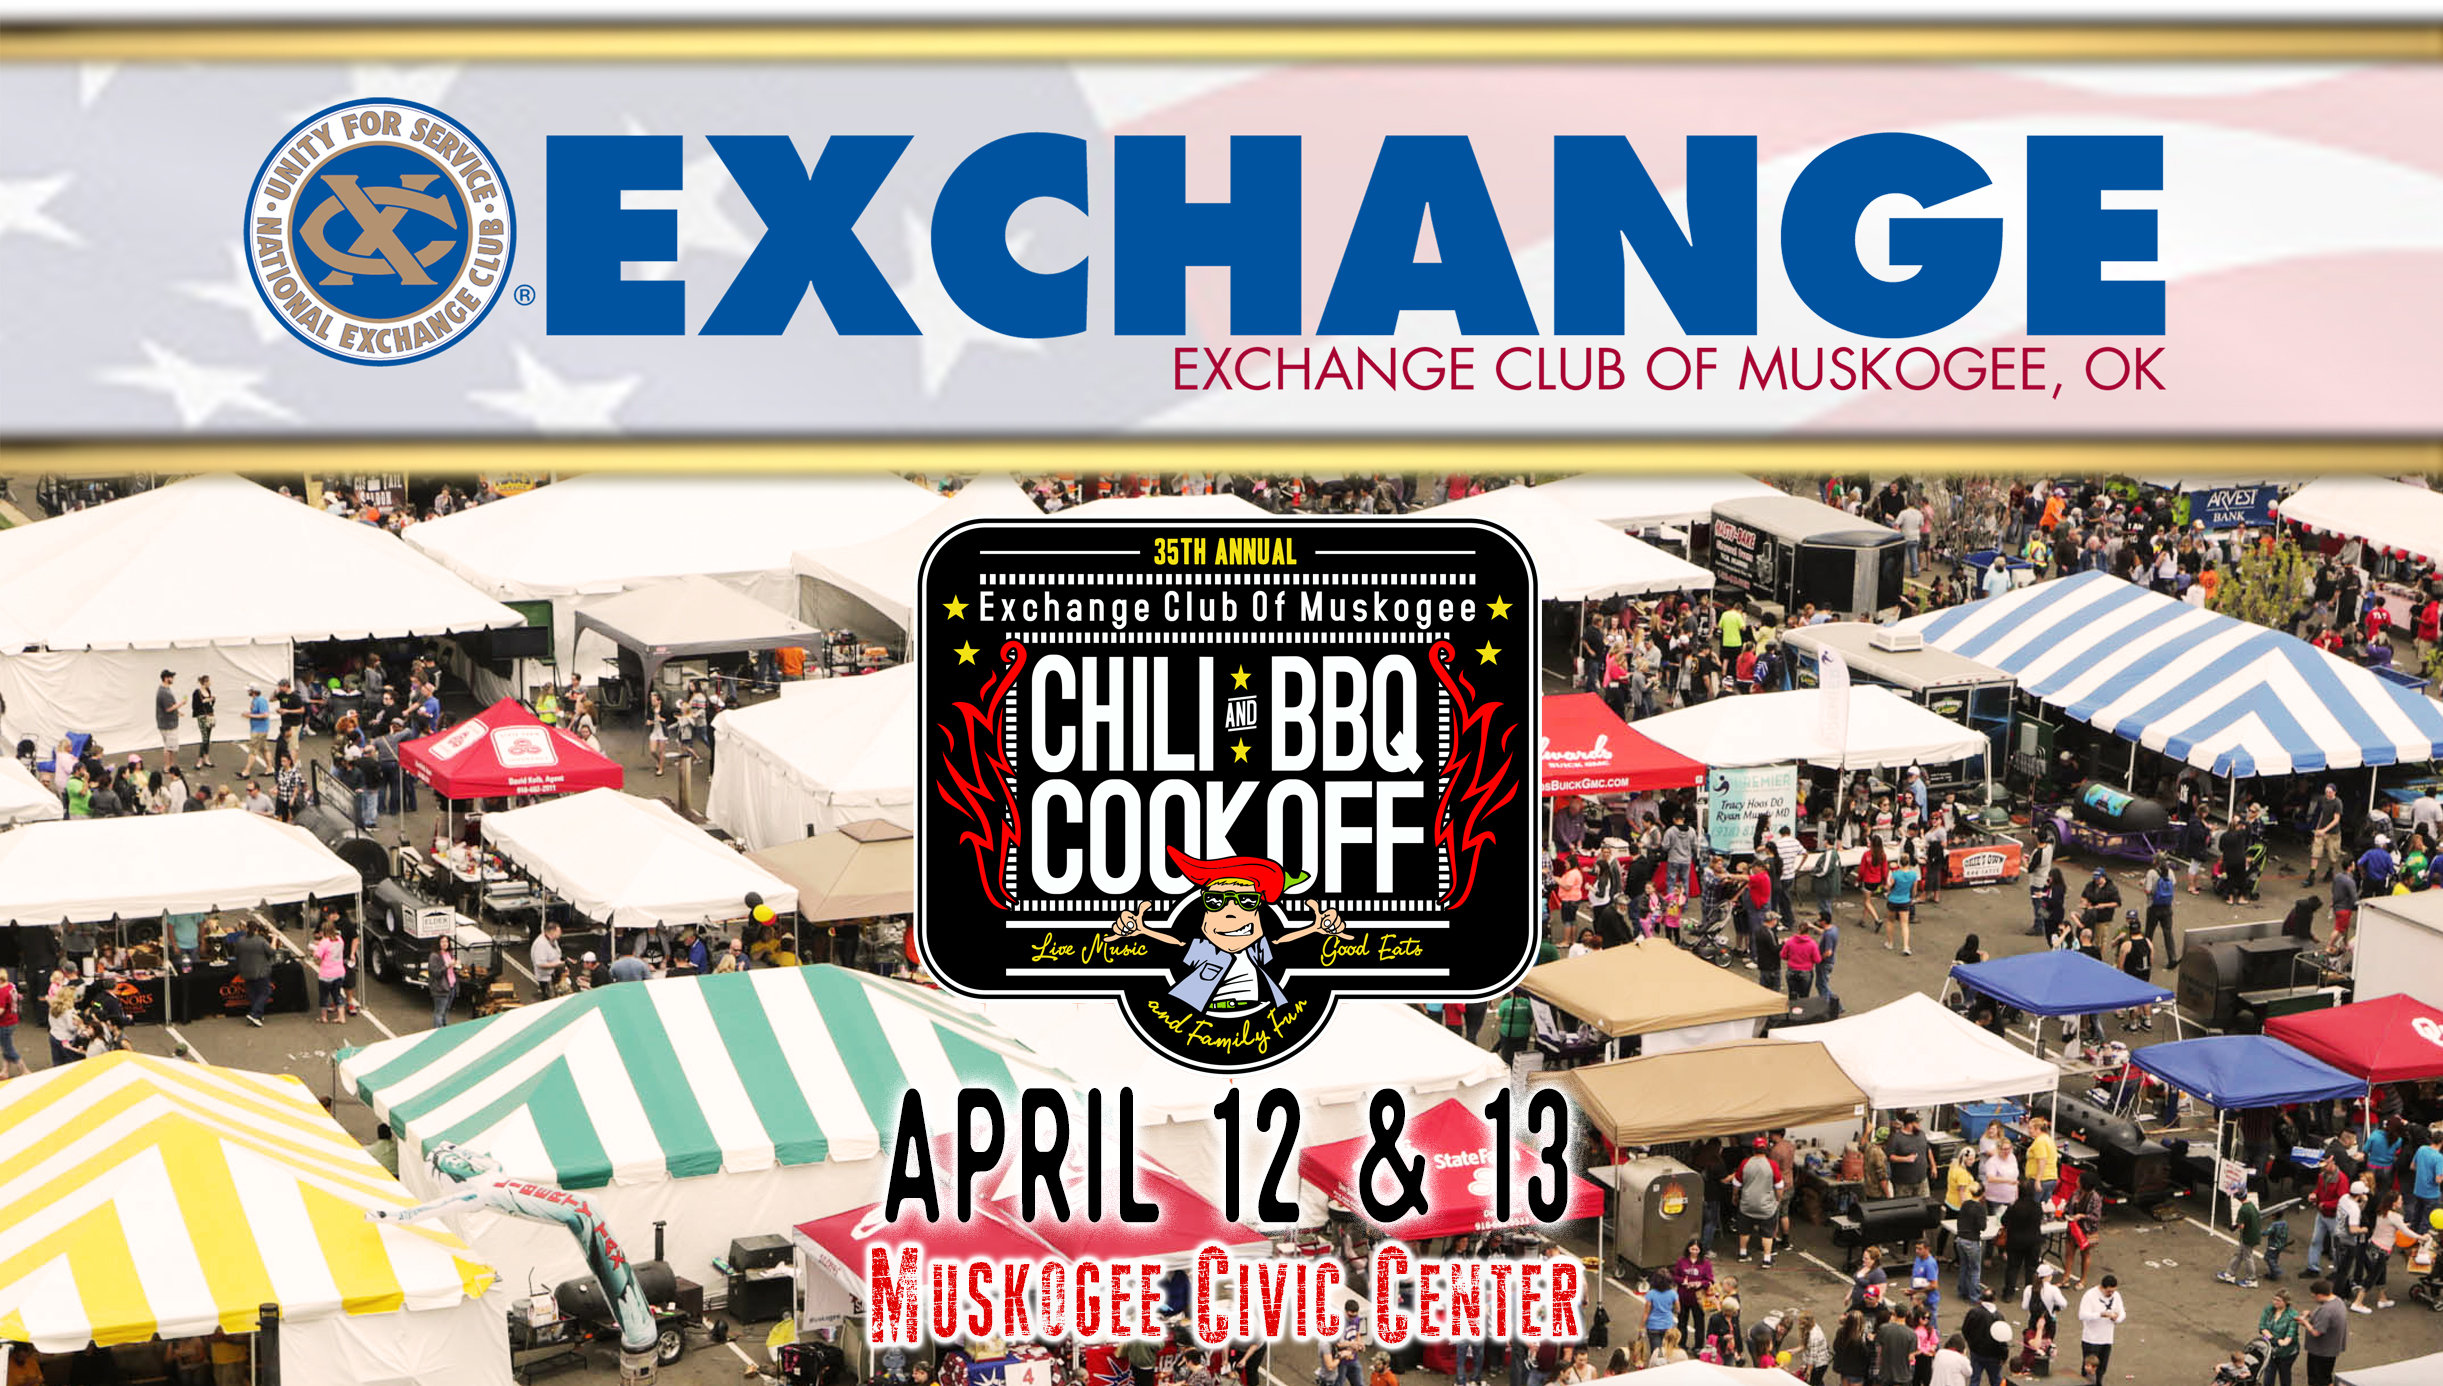 Muskogee Chili and B-B-Q Cook-off!